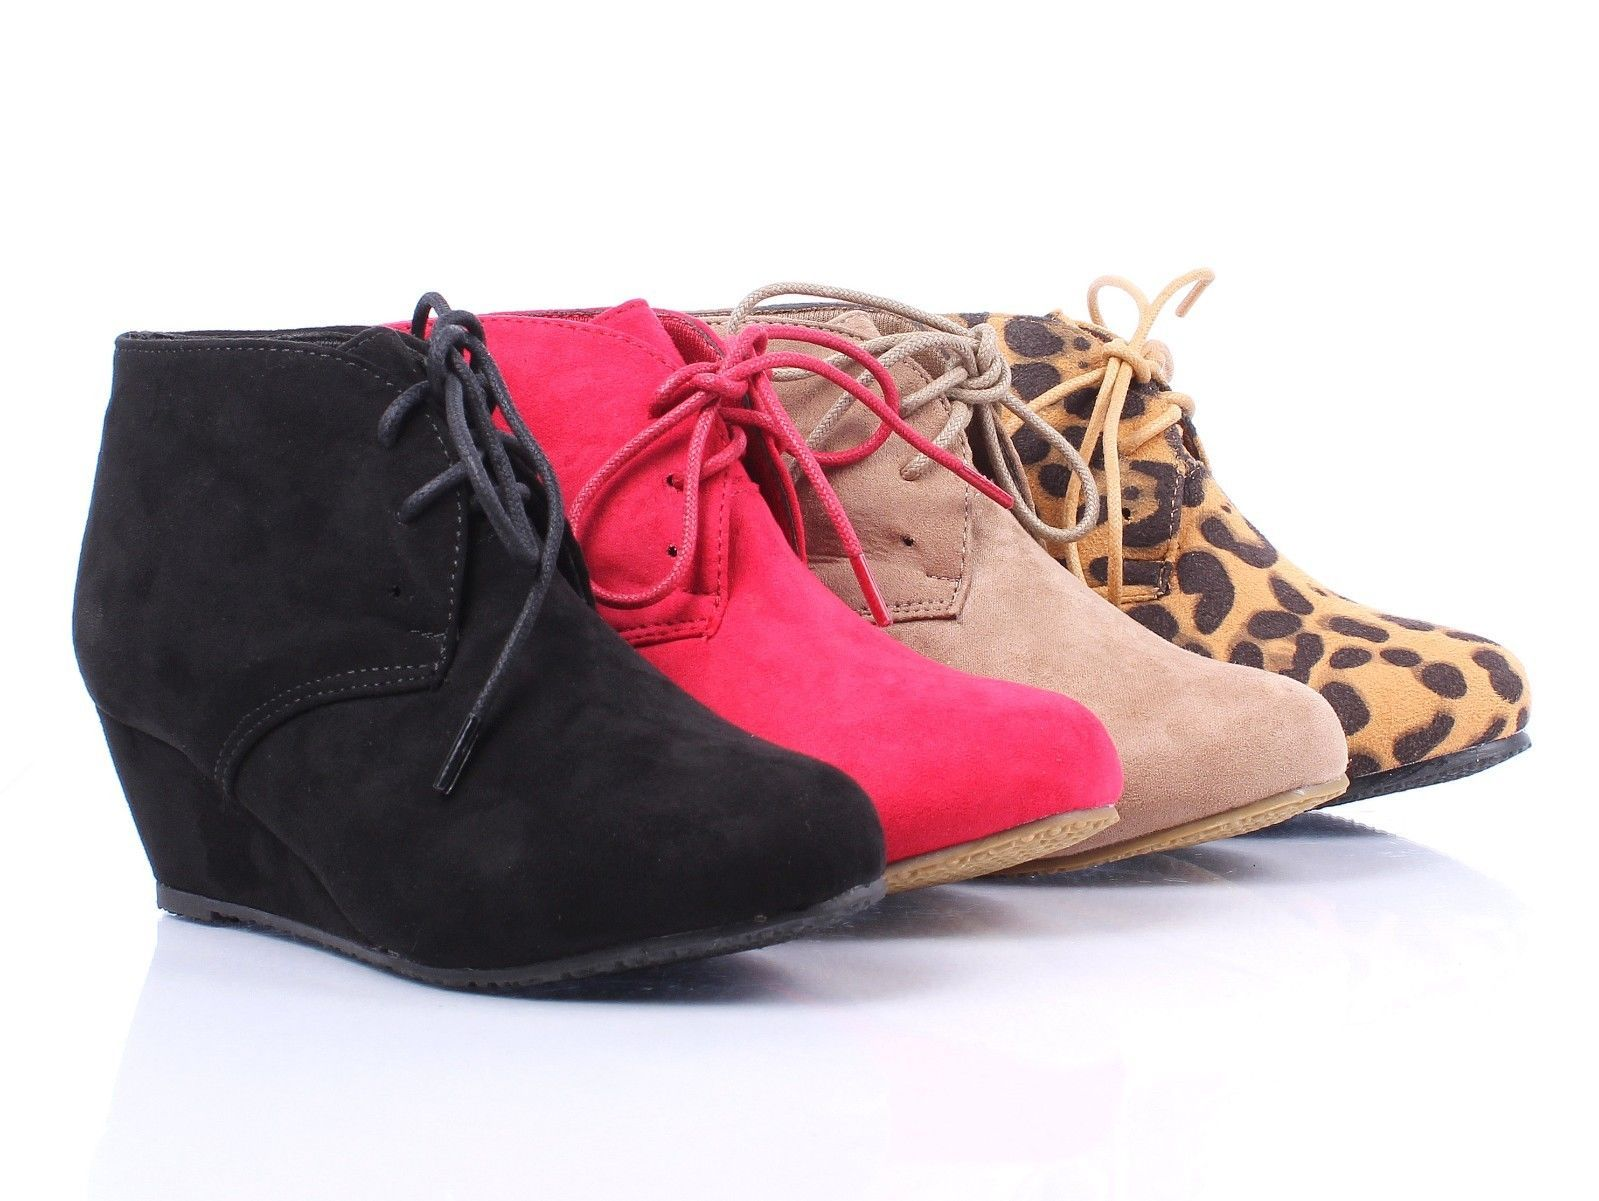 shoes girls age 11 - - Yahoo Image Search Results  42e20b073